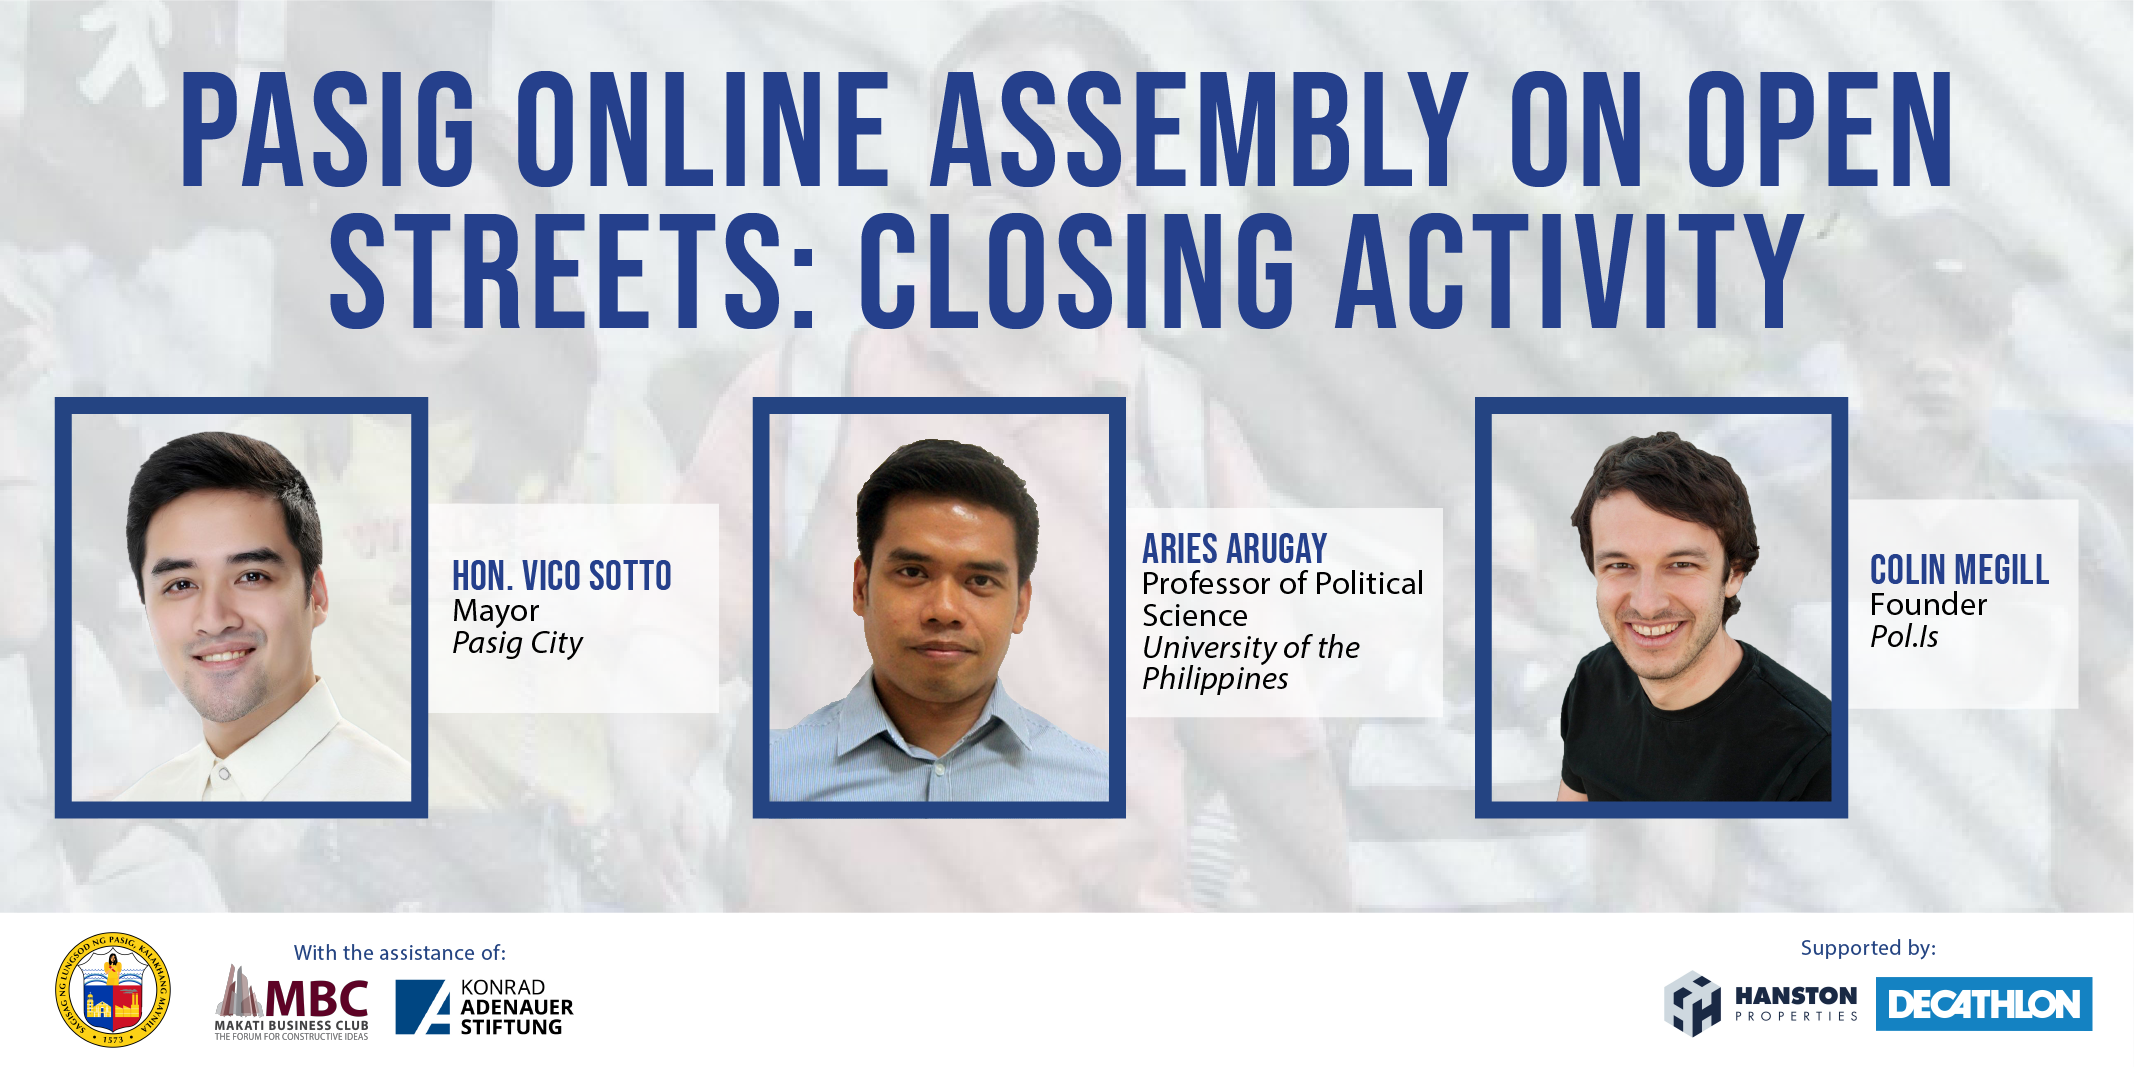 Pasig Online Assembly on Open Streets: Closing Activity